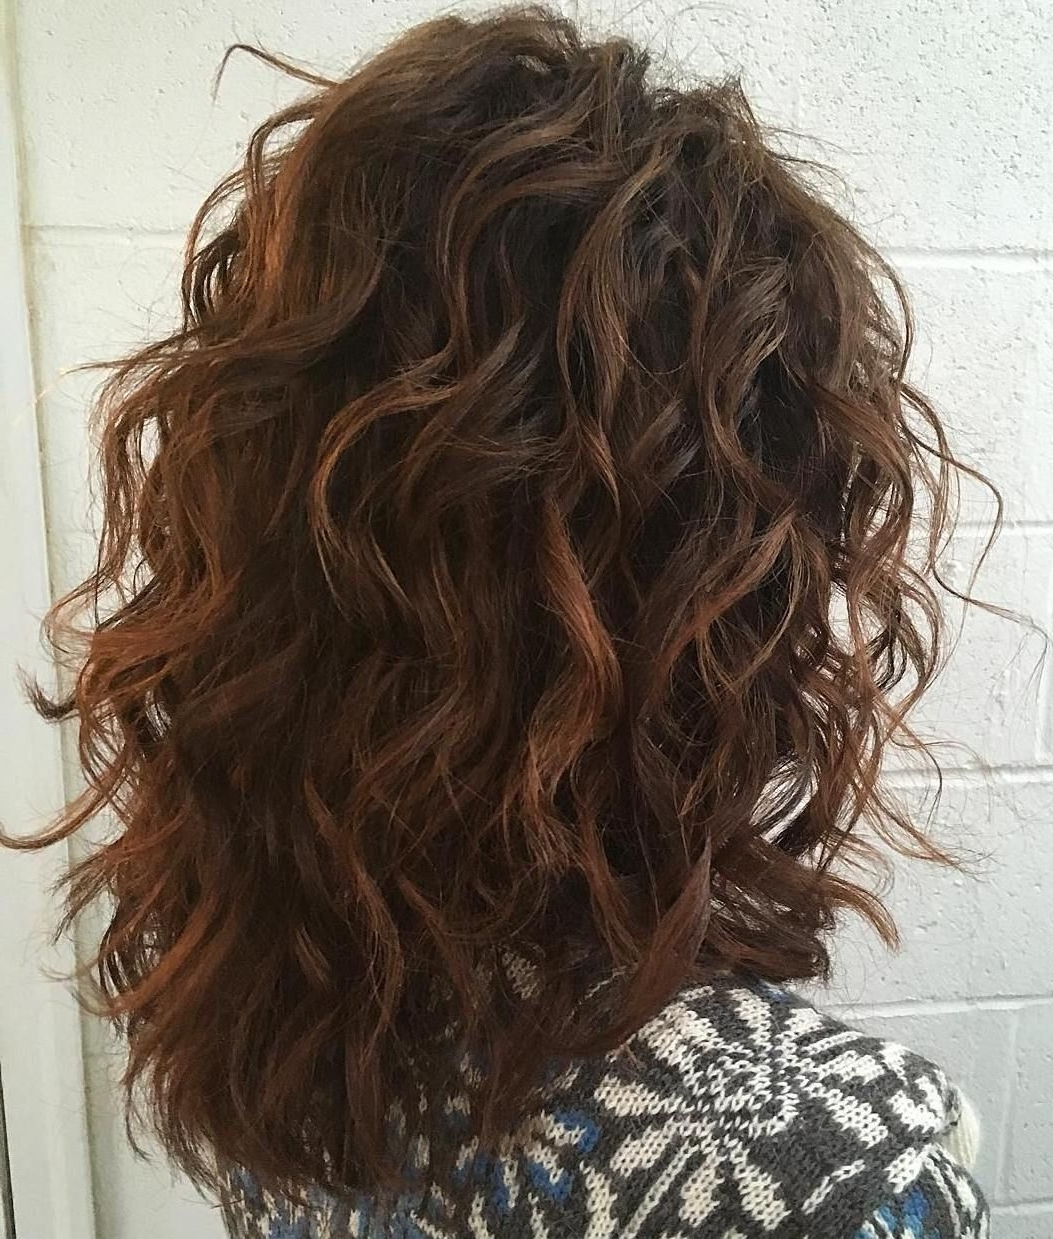 Pin On Cute Long Hairstyles Cute Hairstyles For Medium Length Thick Wavy Hair